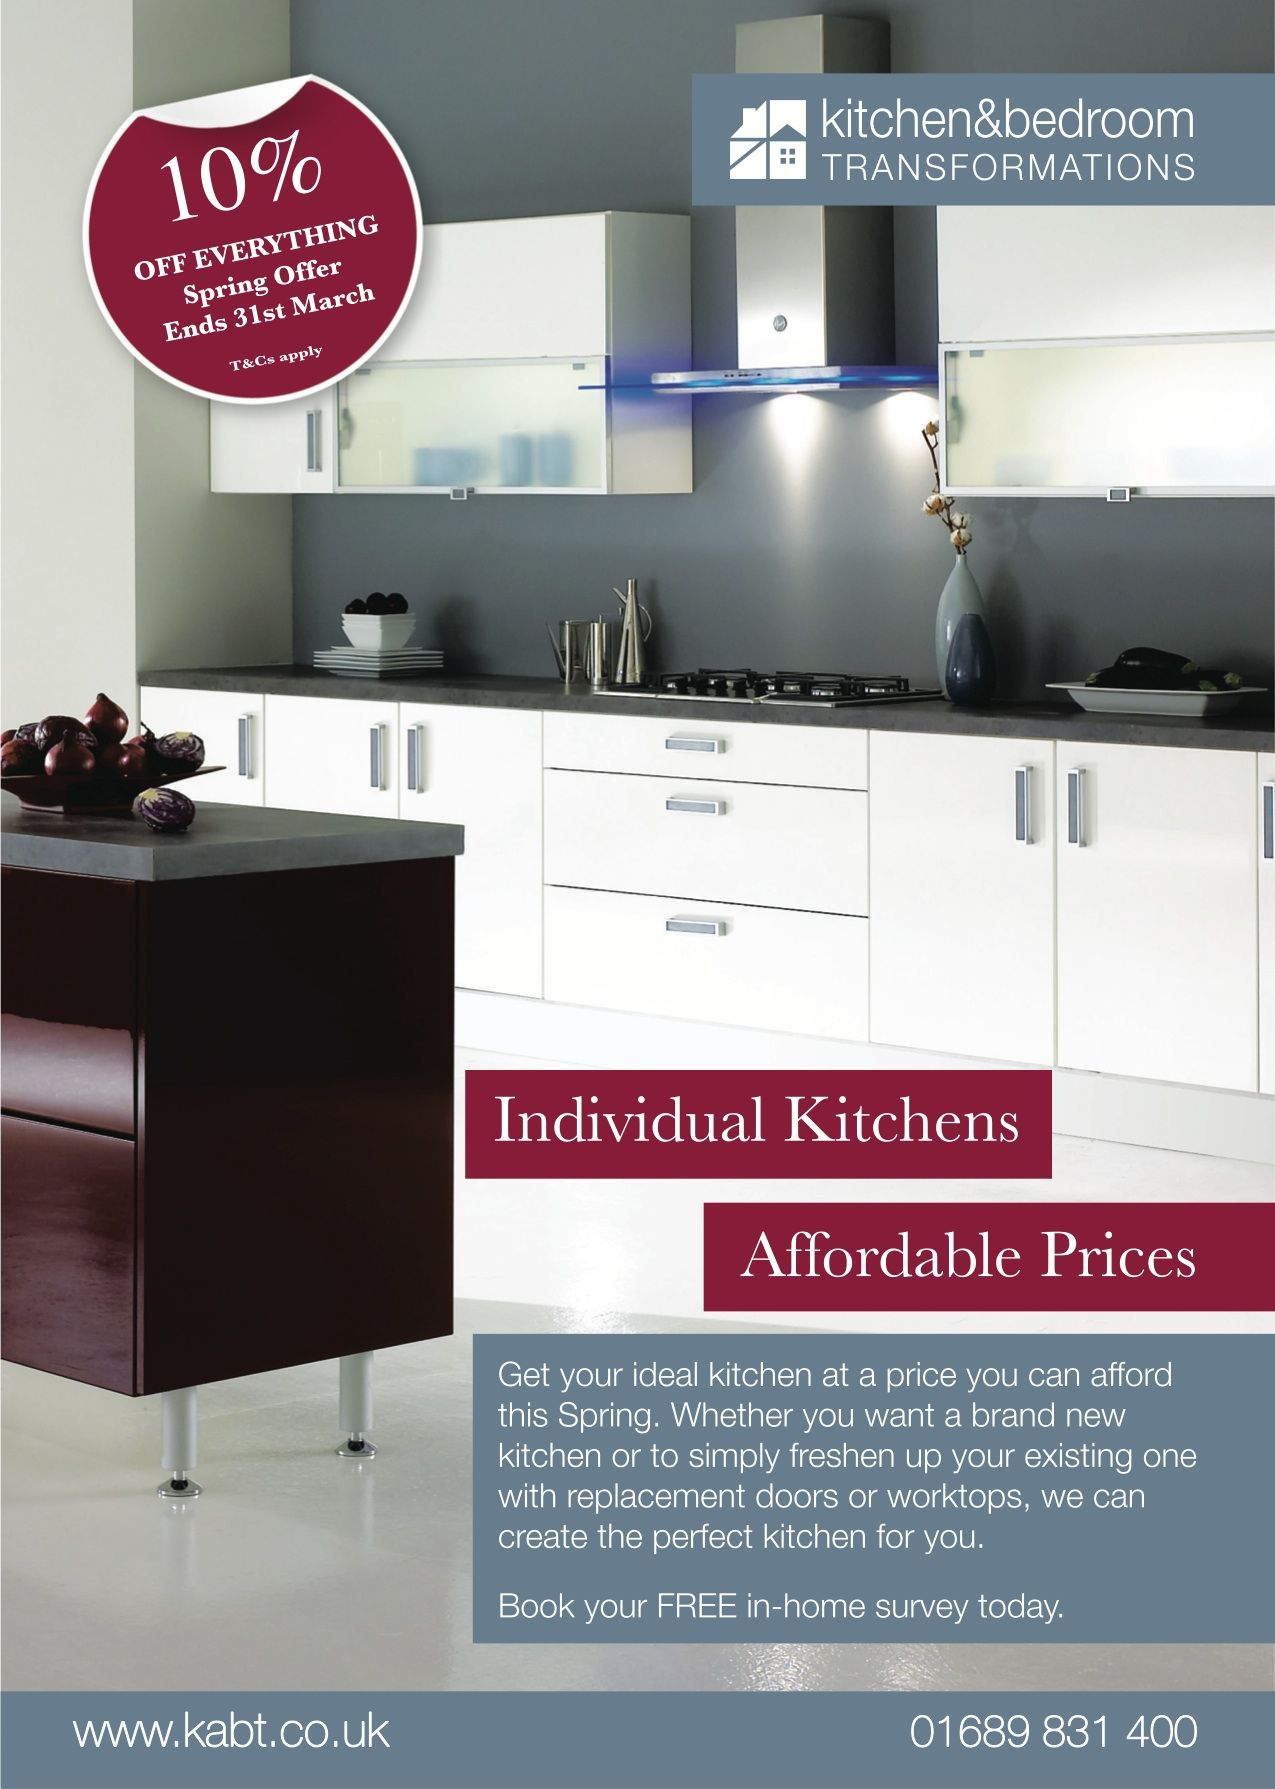 RONIN Marketing Designed A Series Of Ads For Kitchen And